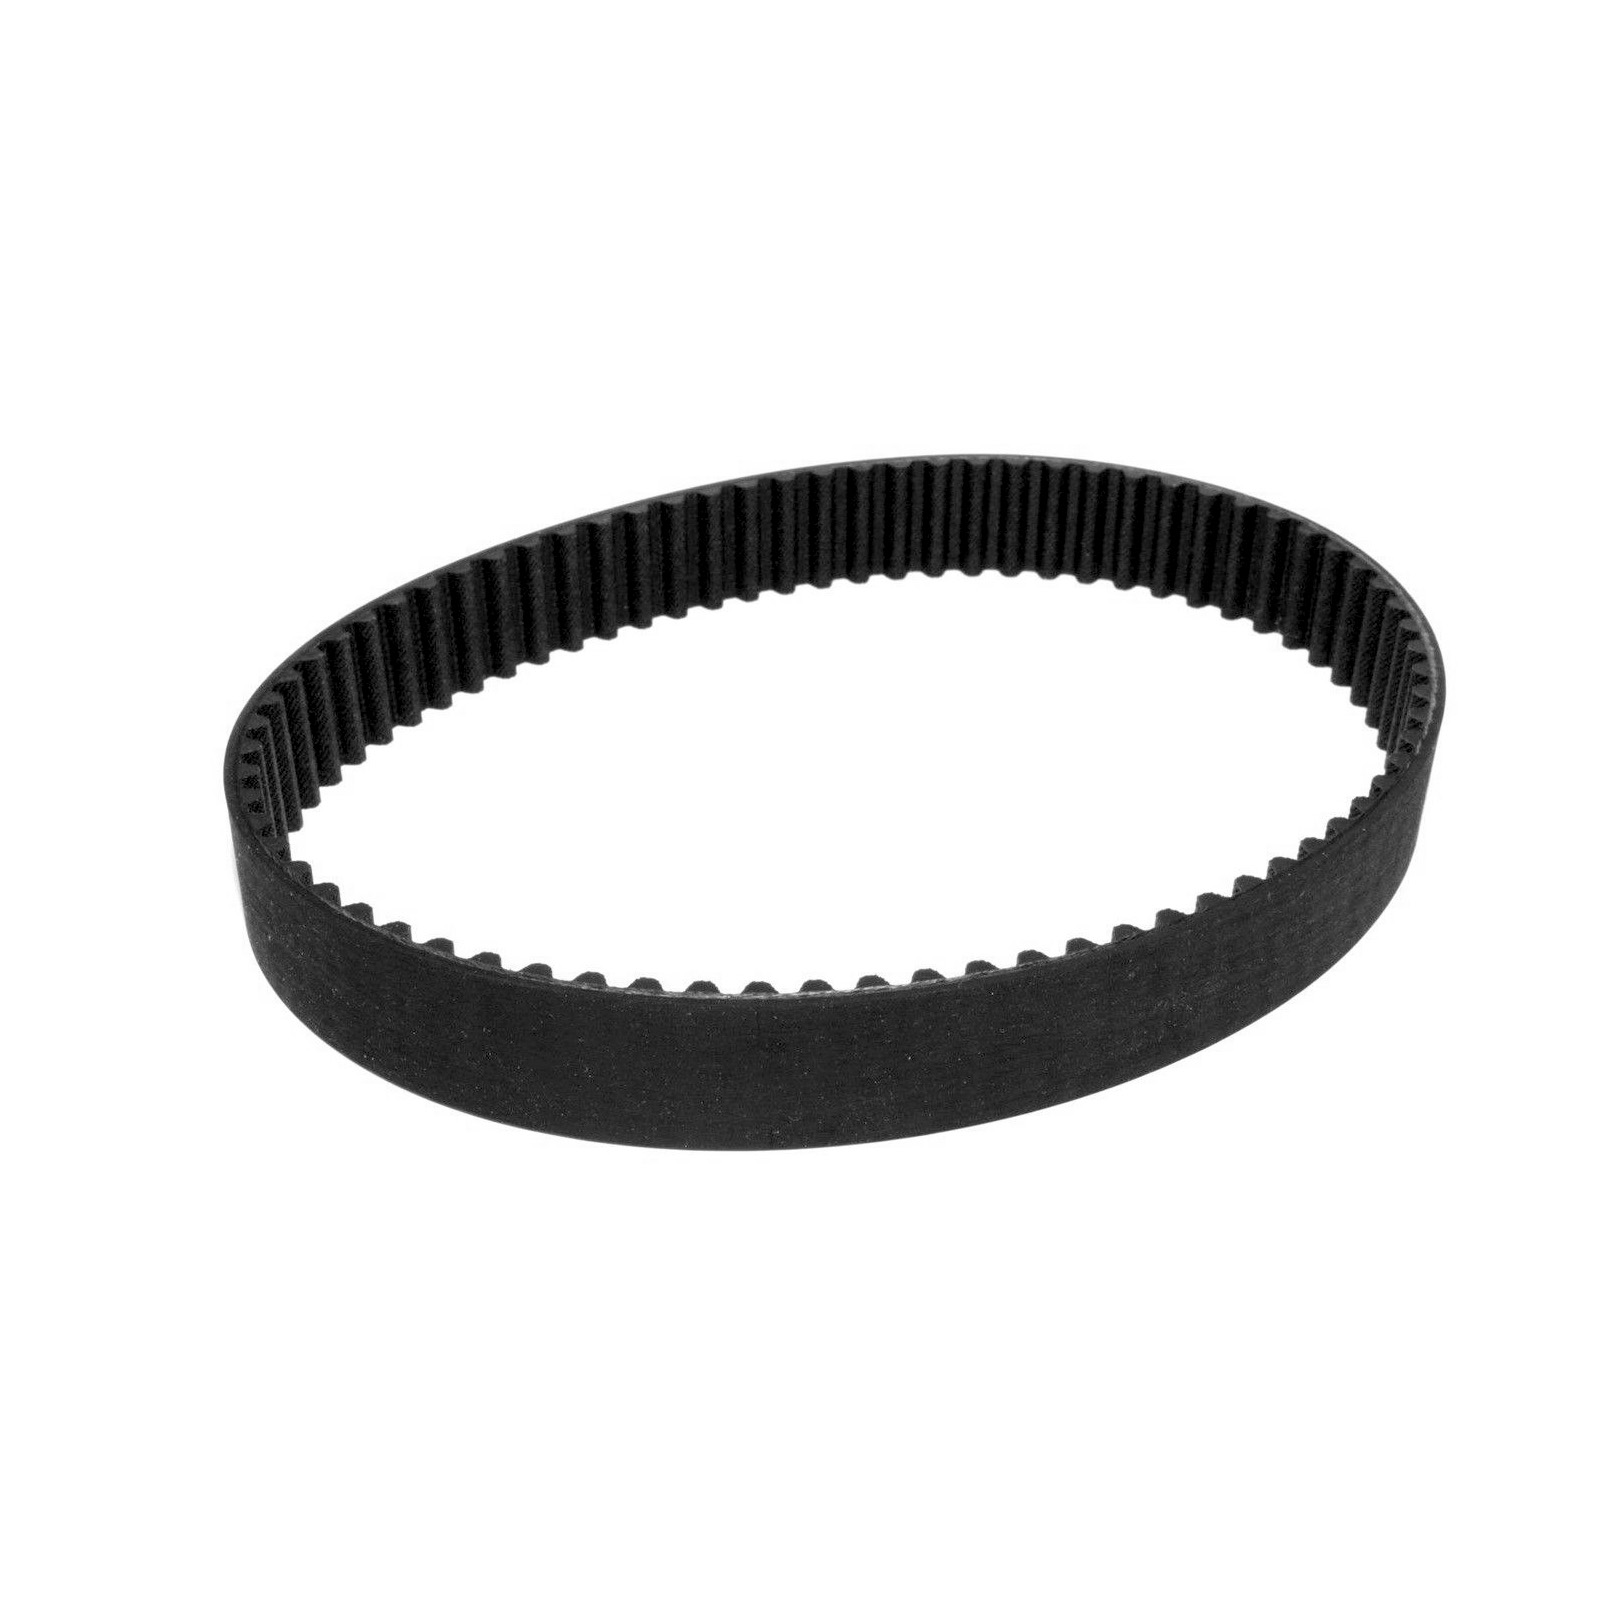 hight resolution of chevy bbc 454 79 tooth 29 5 mm x 635mm timing belt drive replacement belt